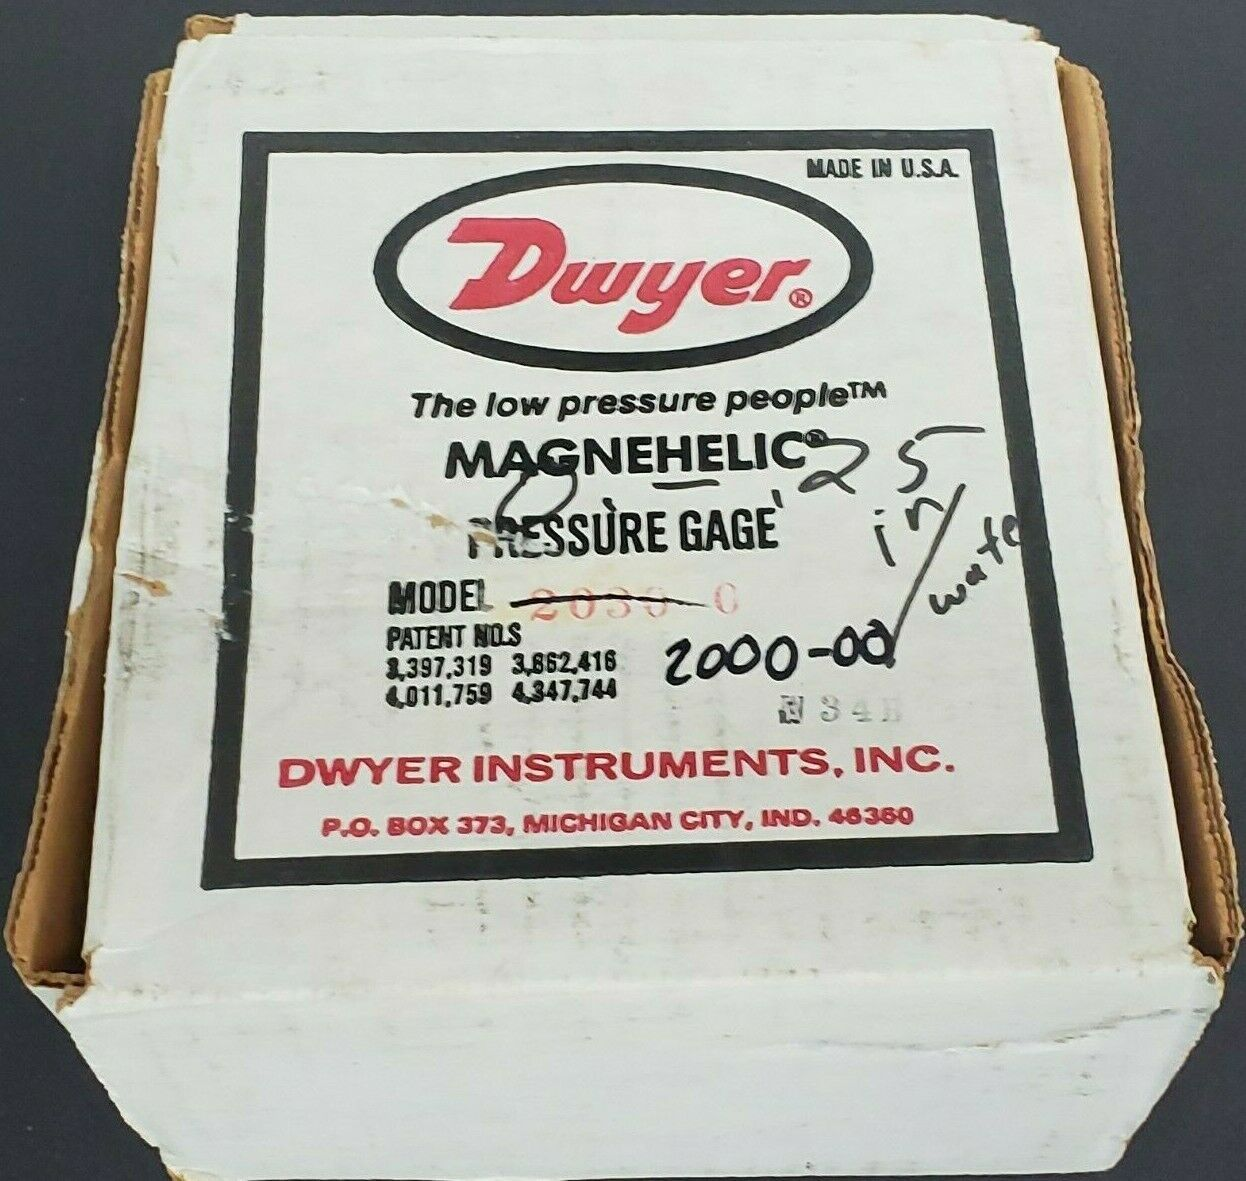 DWYER MAGNEHELIC 2000-00 PRESSURE GAUGE, 15PSIG, 0-0.25 INCHES OF WATER, 200000